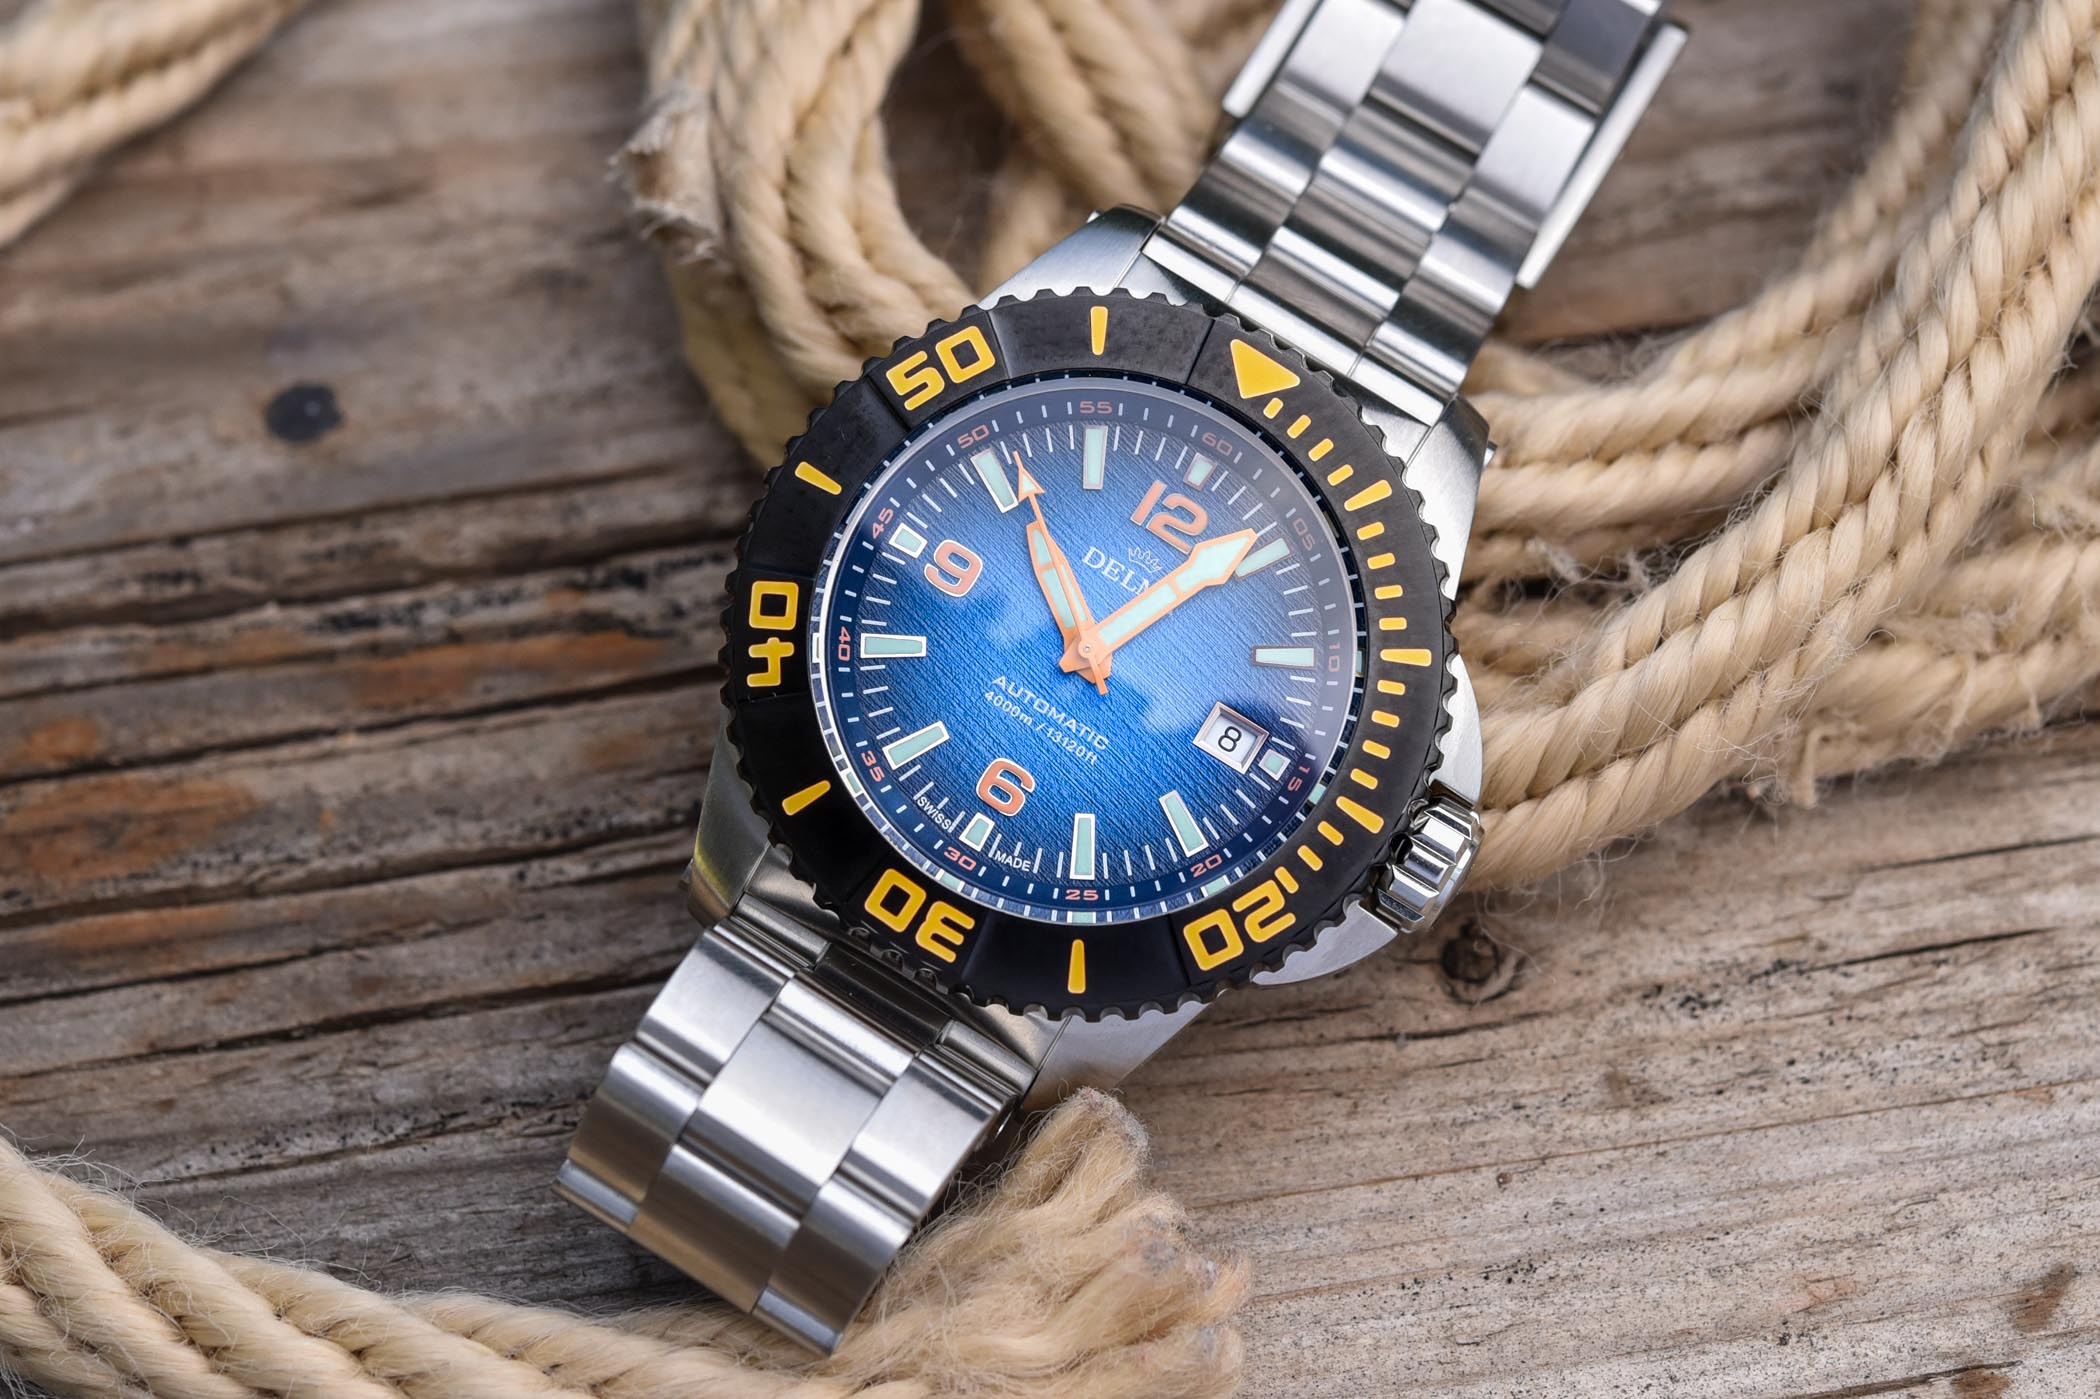 Delma Blue Shark III Azores - dive watch hands-on review - 3